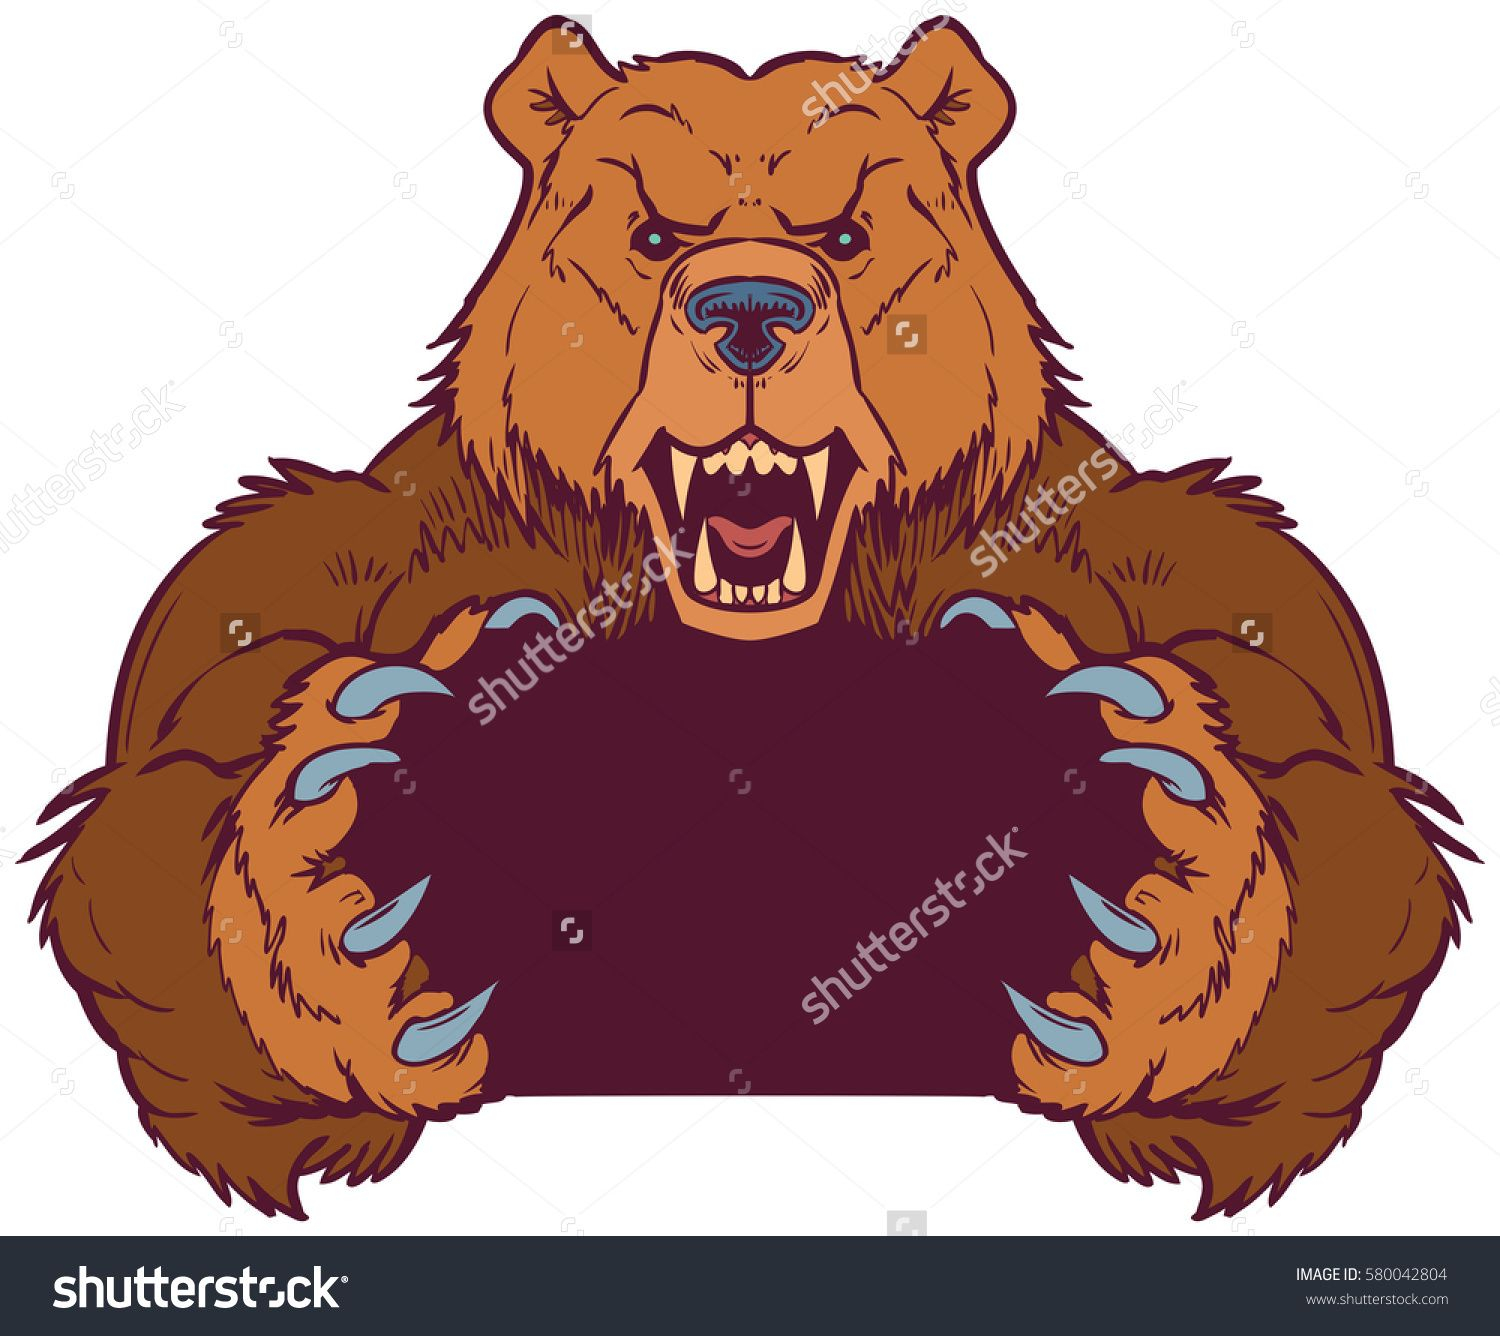 medium resolution of  cartoon clipart illustration template of a brown bear mascot holding or gripping empty space between its claws vector layers are set up for easy